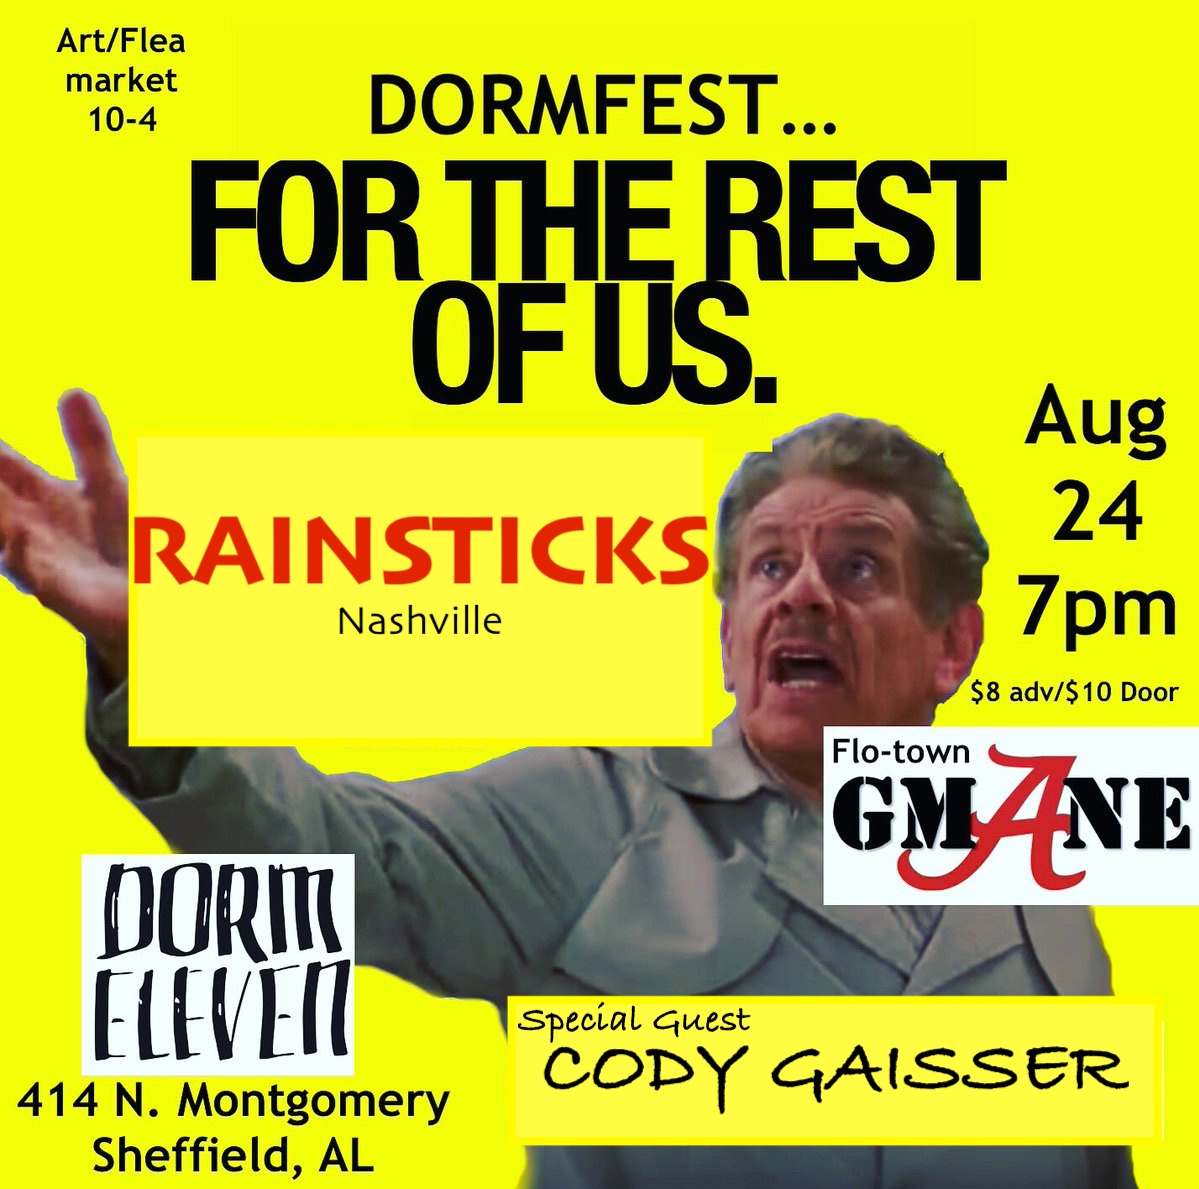 Saturday August 24th! Dormfest (for the rest of us) at Dorm Eleven! 10am-4pm art/flea market inside Dorm Eleven! Music starts at 8pm with  Rainsticks ,  Geoffrey G Mane Robinson  and  Cody Gaisser ! Tickets for show are $8 advance, $10 at the door on sale Monday July 22! If you are interested in a booth for the art/flea, please email at dormeleven@gmail.com!